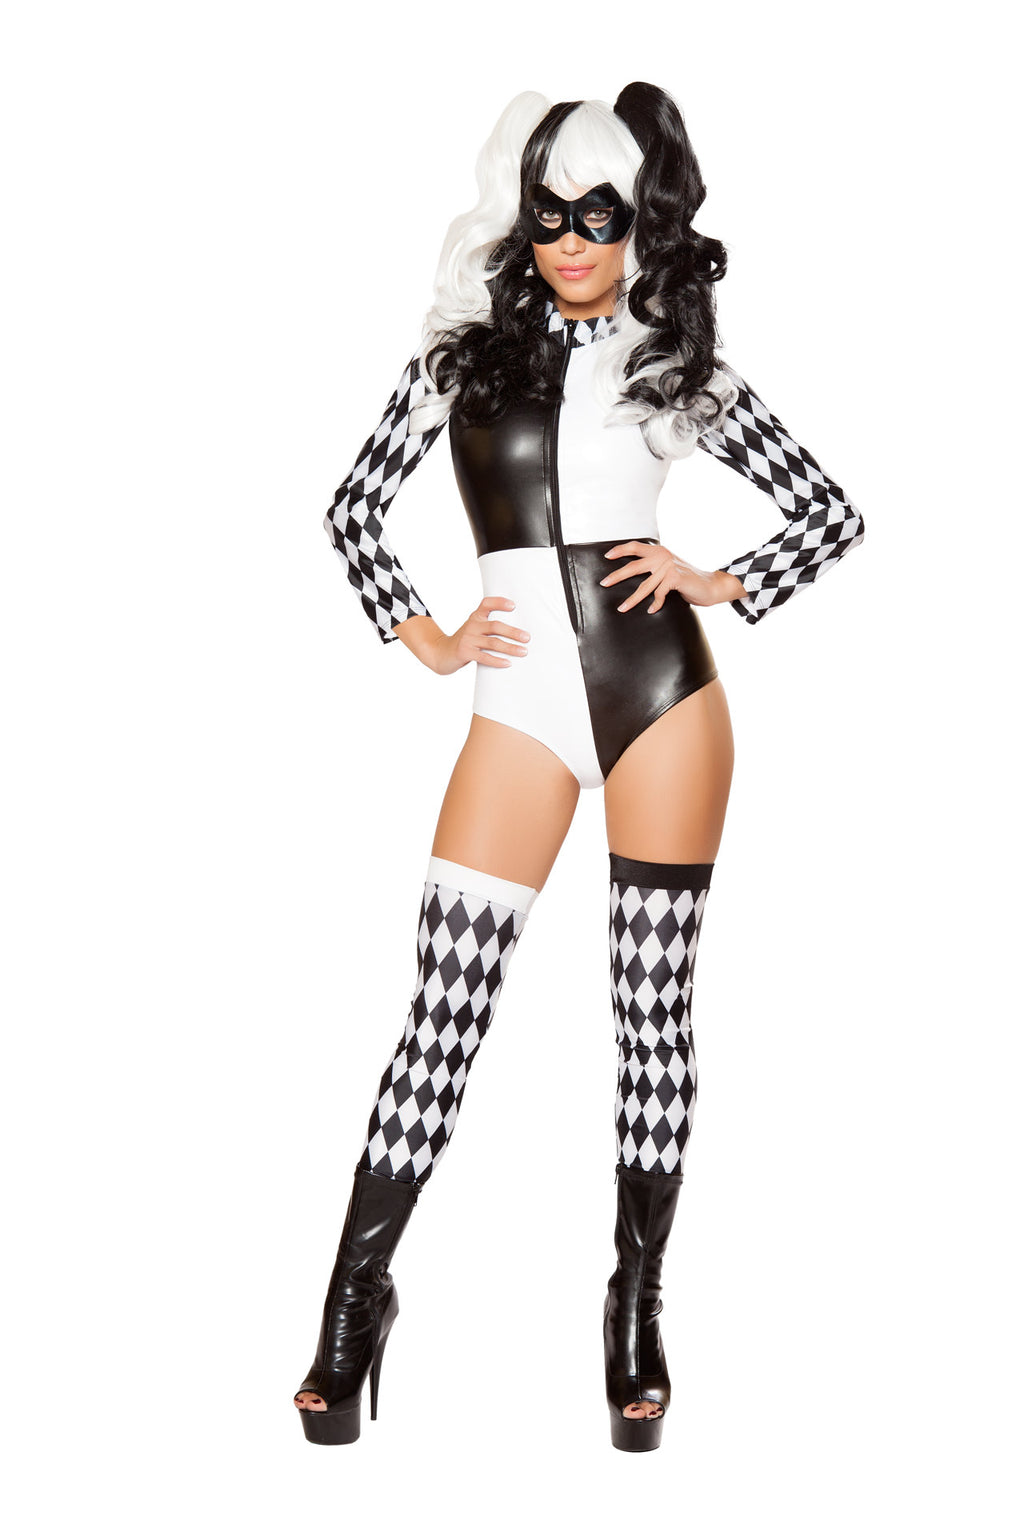 2-PC-Court-Jester-Harlequin-Black-&-White-Harlequin-Romper-w/-Mask-Costume